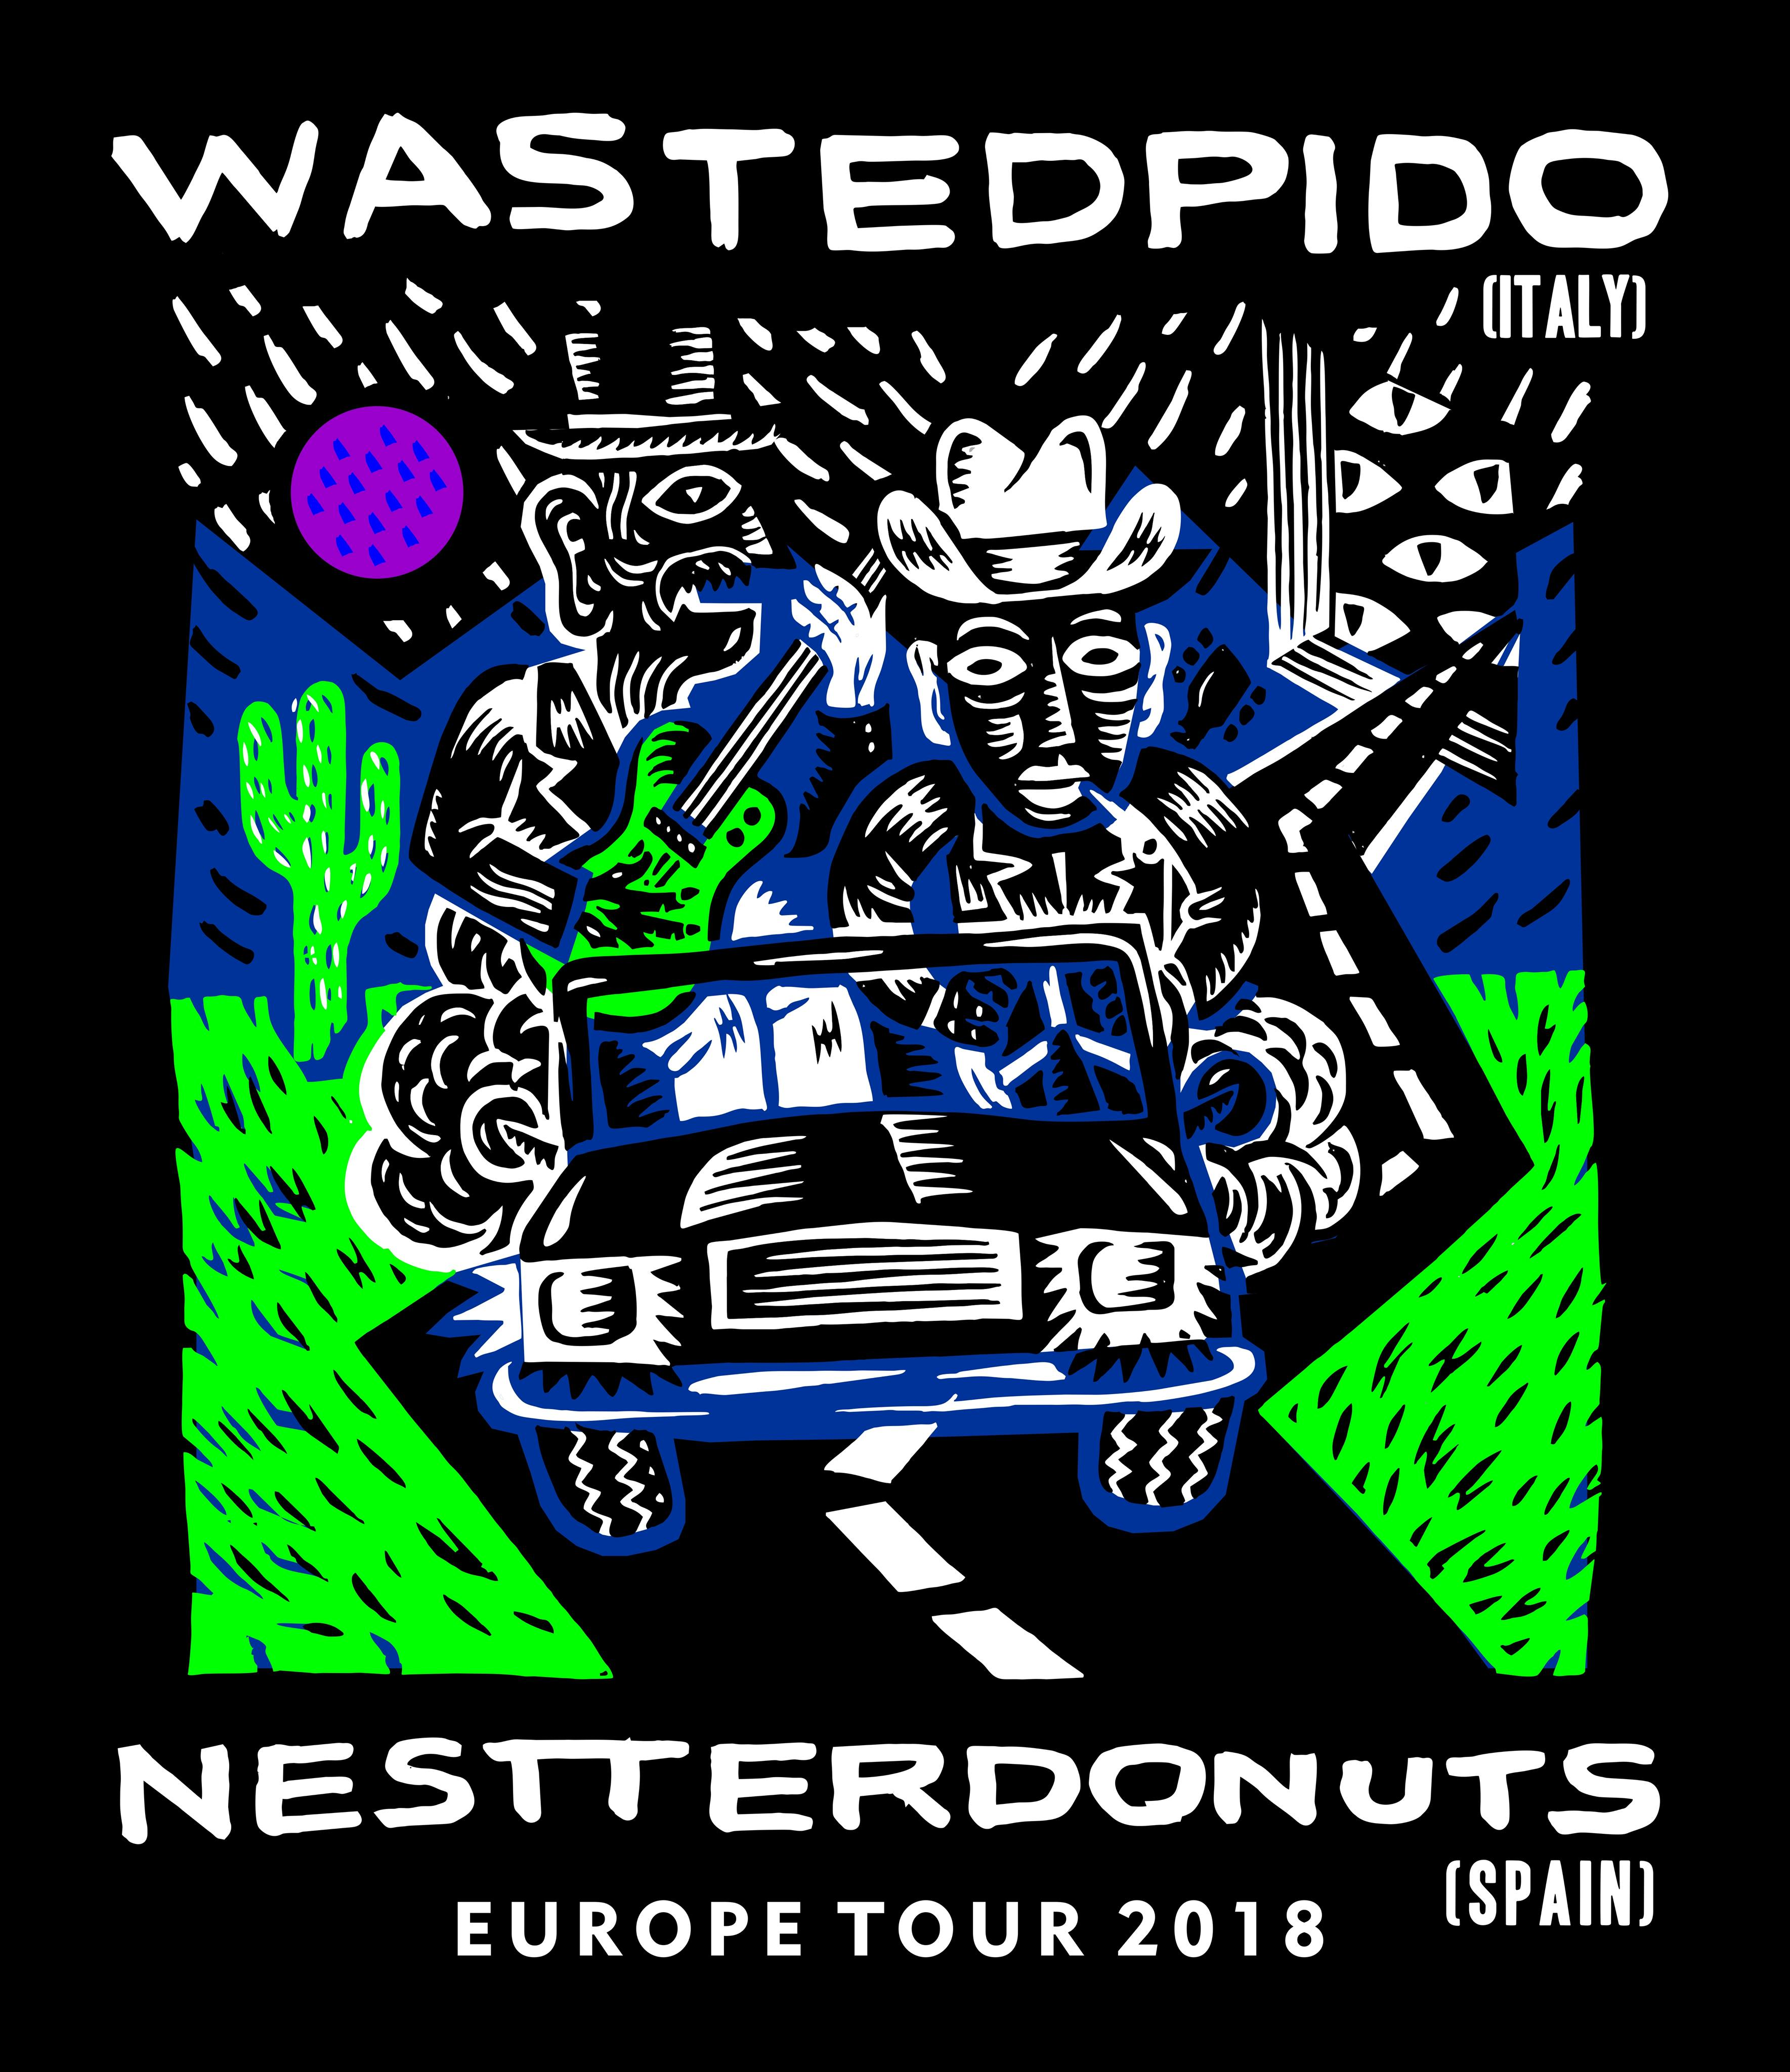 wasted pido / nester donuts tour 2018 artwork by klaus koti